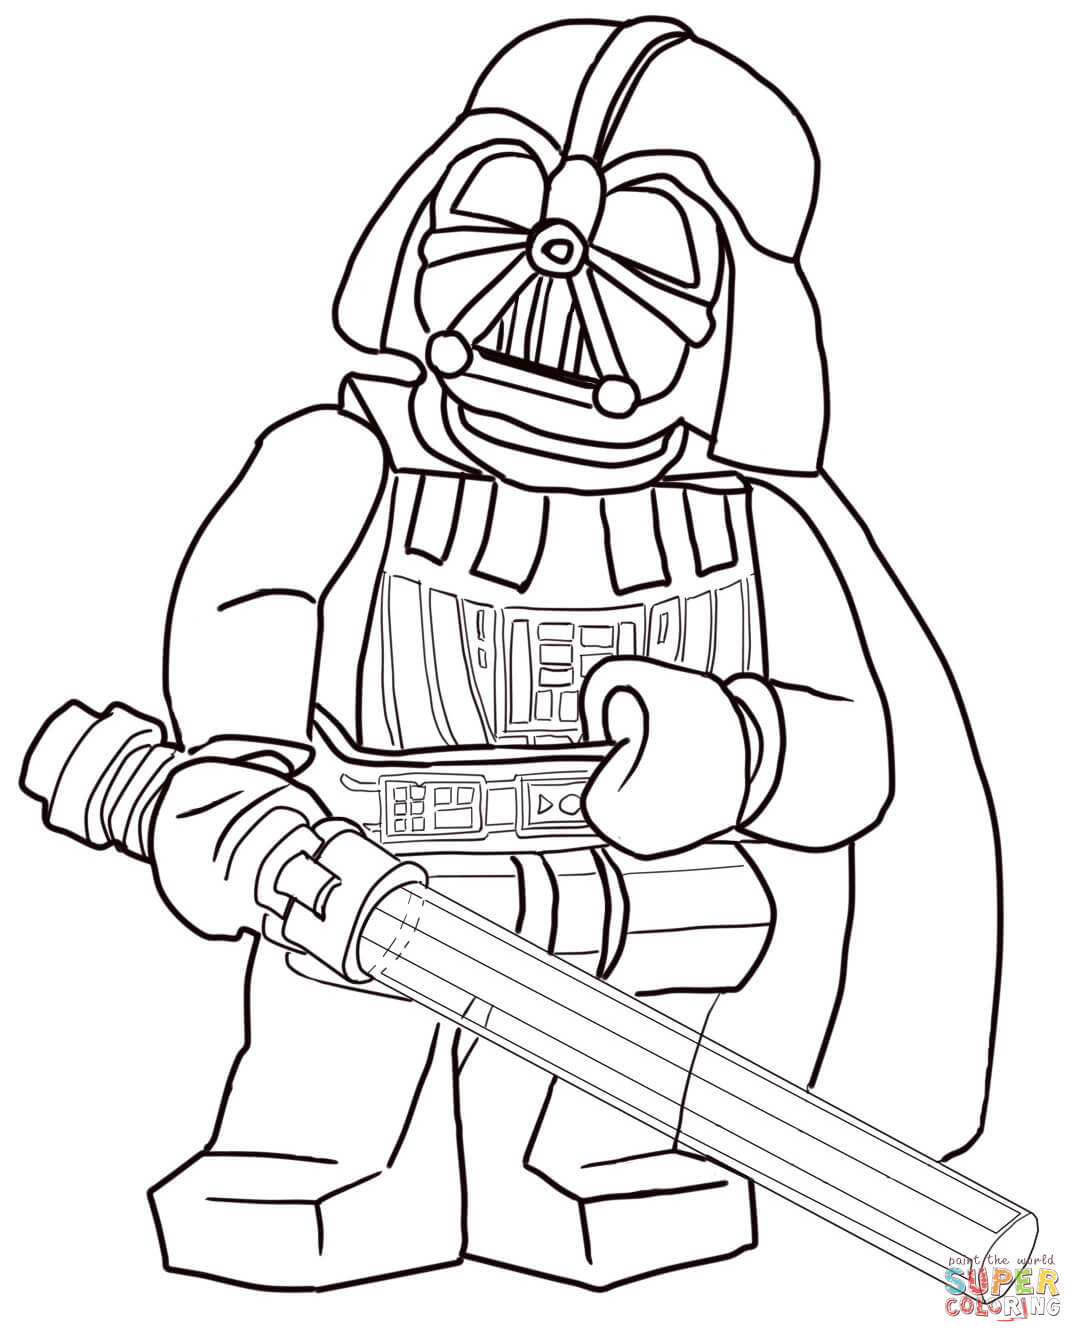 Starwars Drawing at GetDrawings.com | Free for personal use Starwars ...